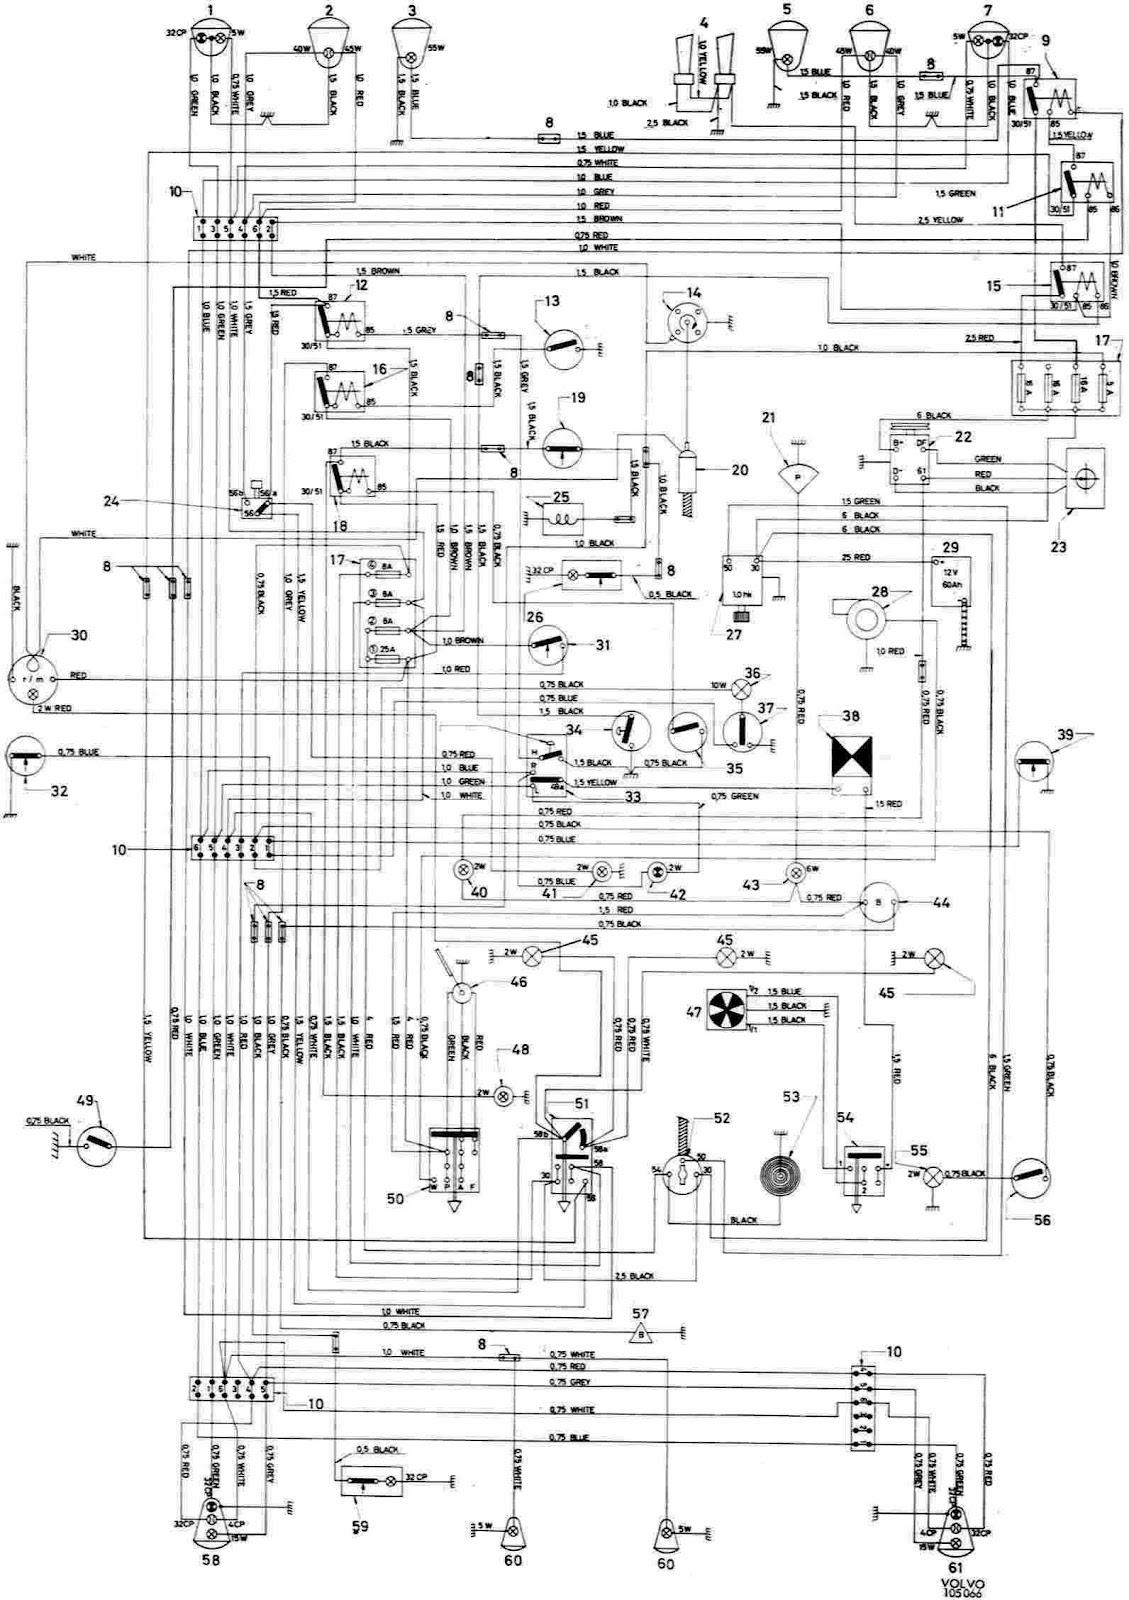 Volvo+123+GT+Complete+Wiring+Diagram hu 613 wiring diagram boat wiring diagram \u2022 wiring diagrams j e46 o2 sensor wiring diagram at bayanpartner.co